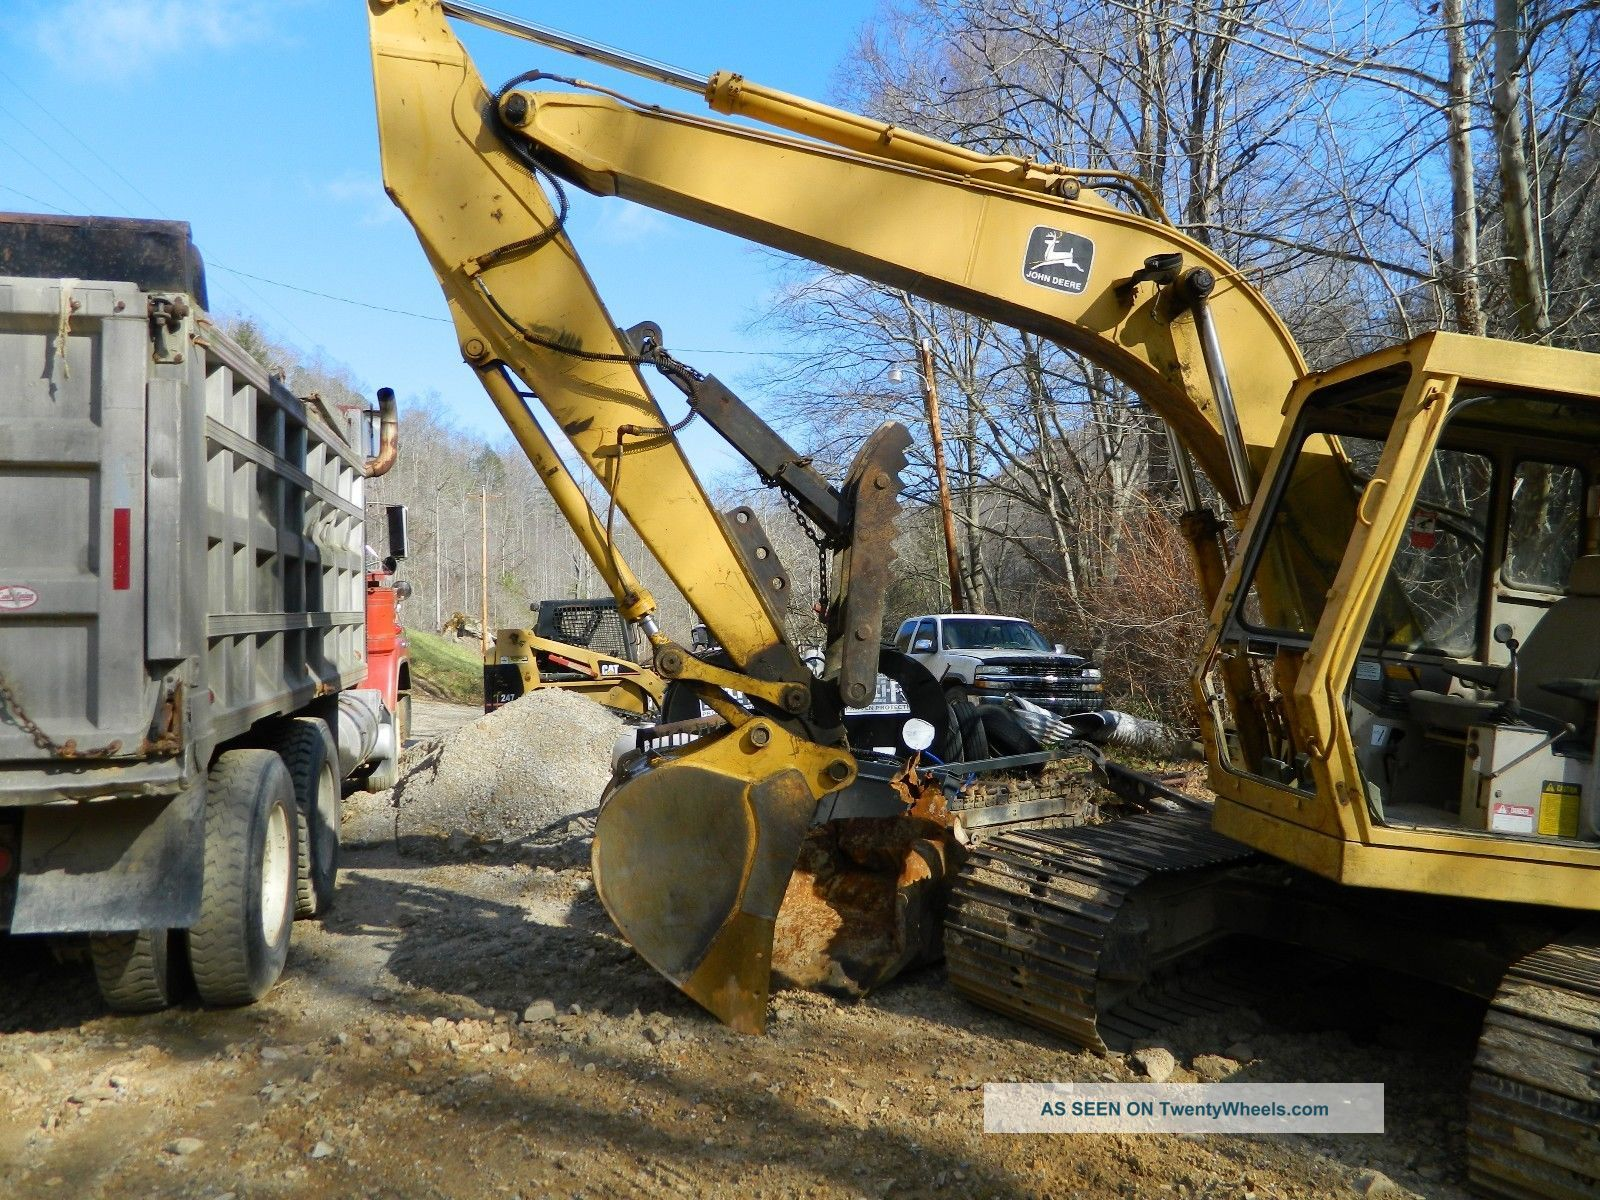 John Deere 490 Excavator With Thumb, 30